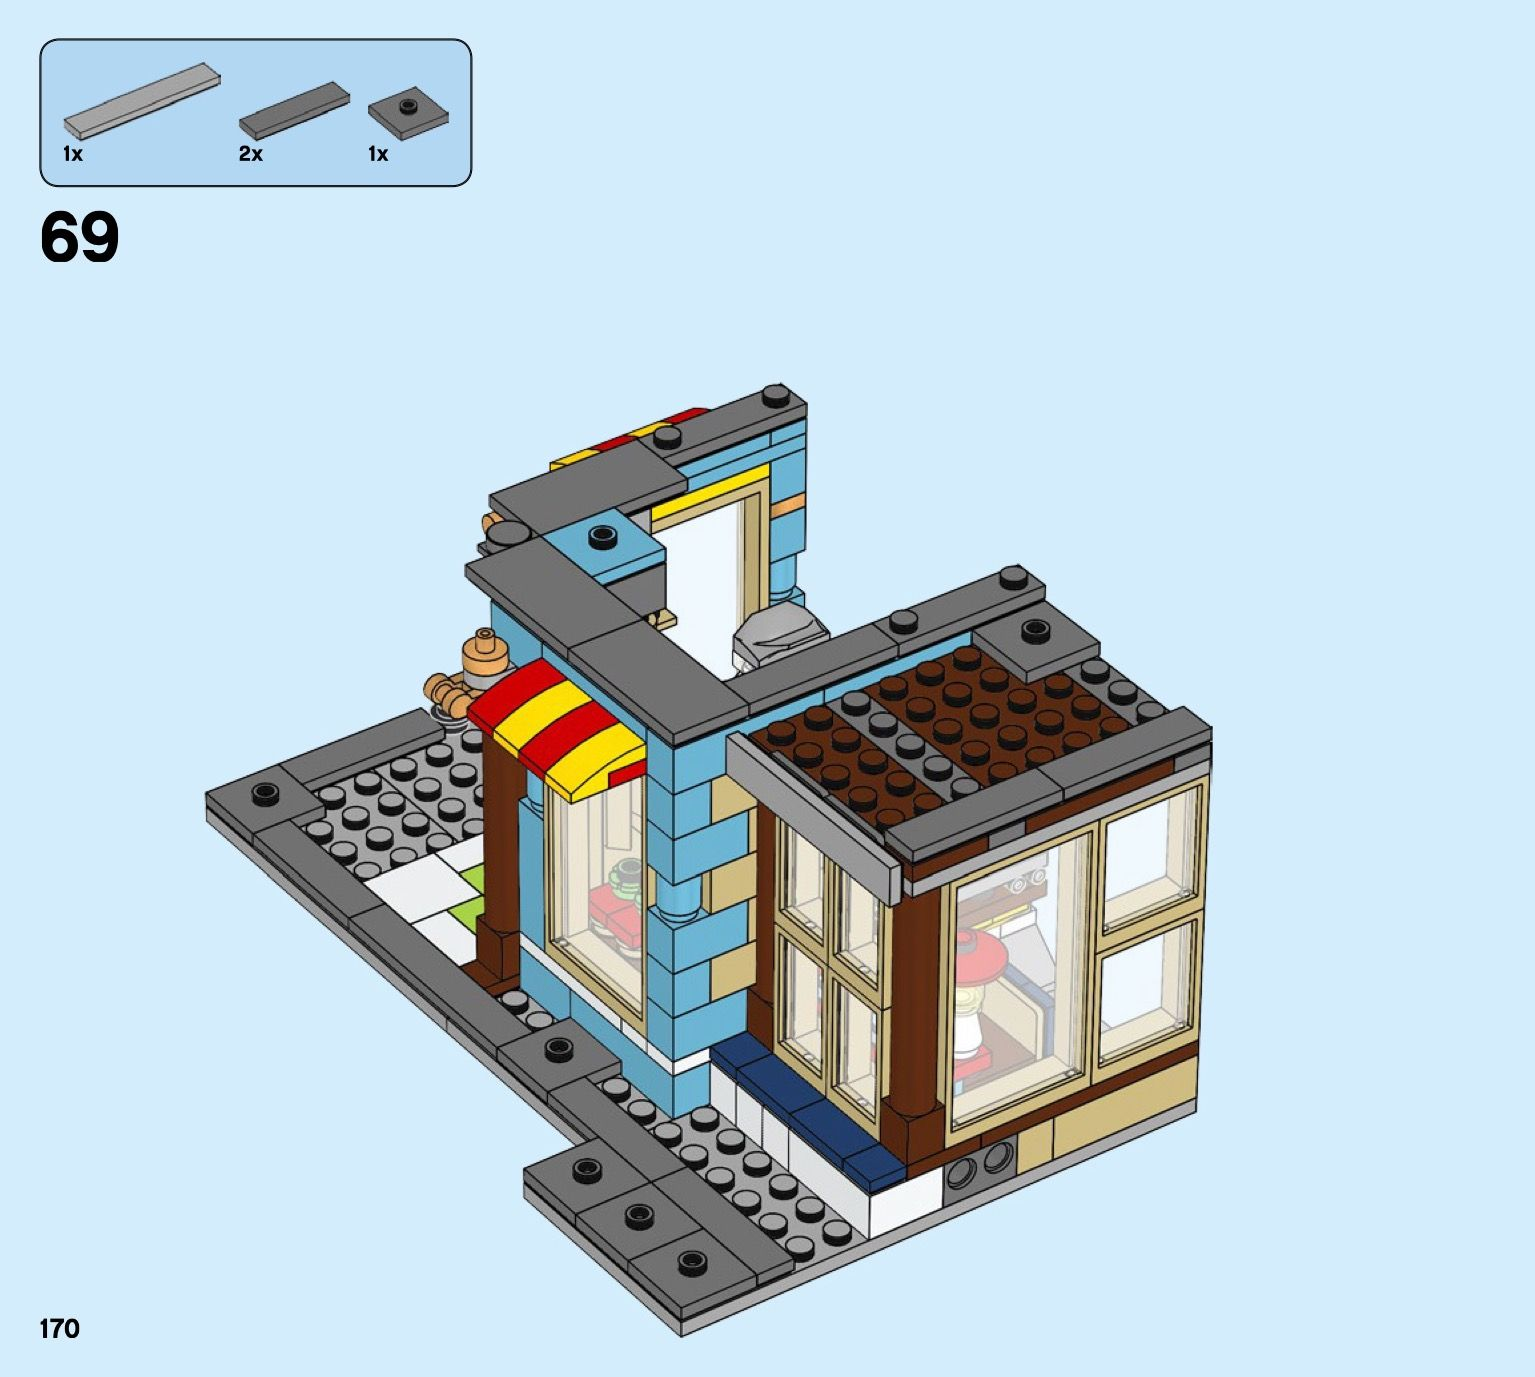 Creator Townhouse Toy Store [Lego 31105] in 2020 Toy